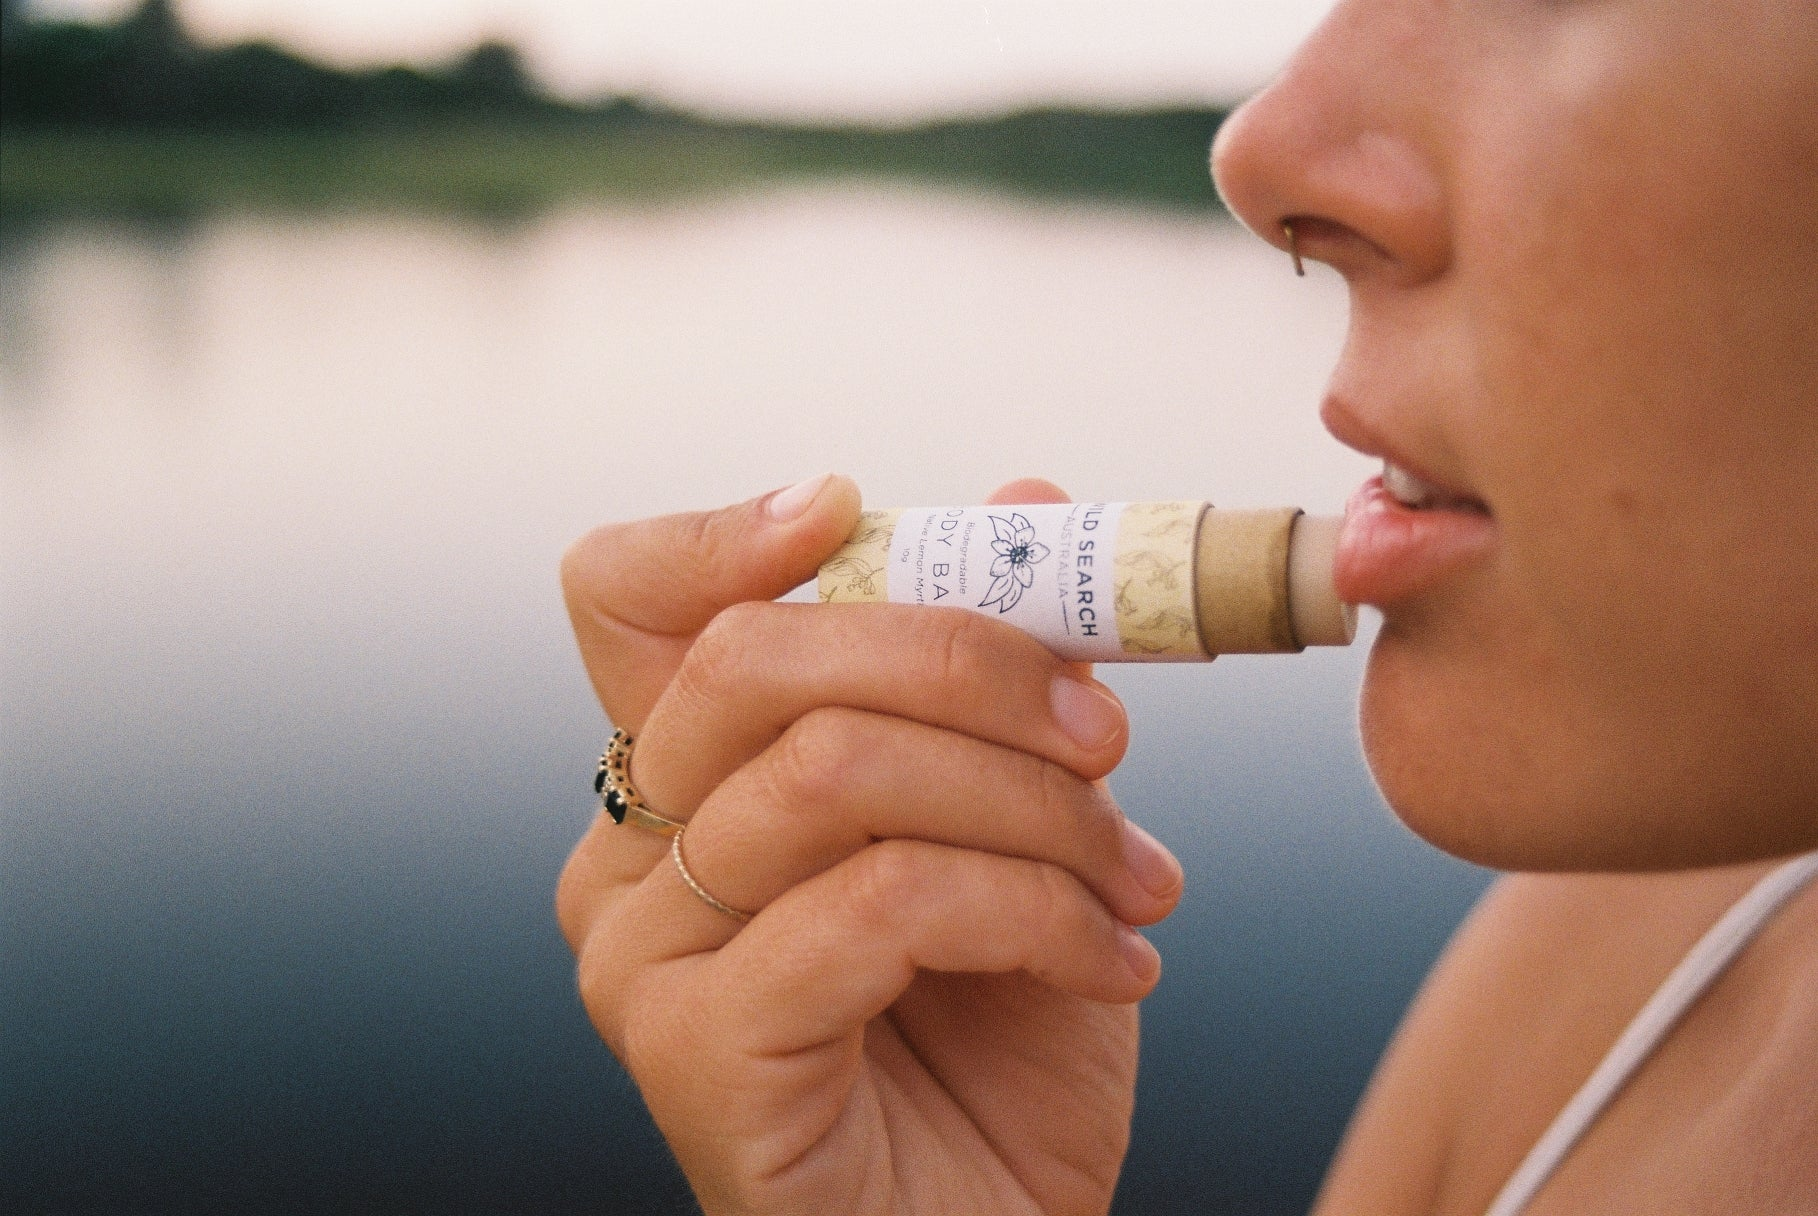 Lady puts lemon myrtle Biodegradable Lip Balm from Wild Search Australia on her lips.